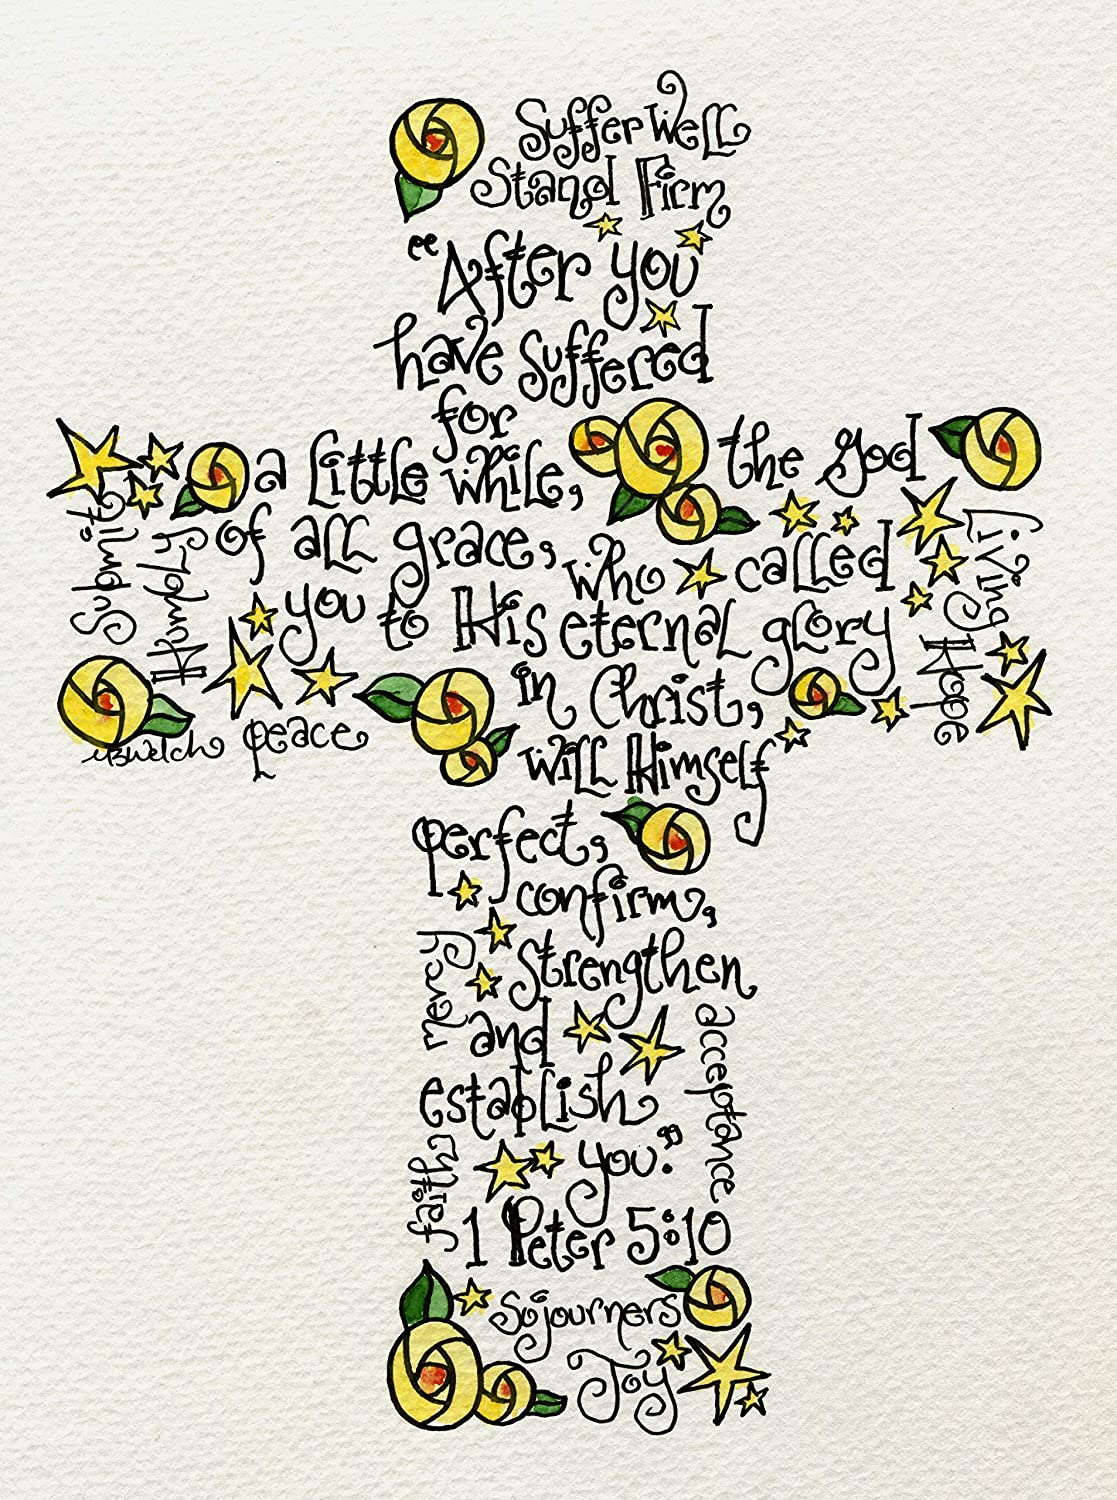 Suffering Cross 5x7 - Christian Get Well Soon or Sympathy Gift with 1 Peter 5:10